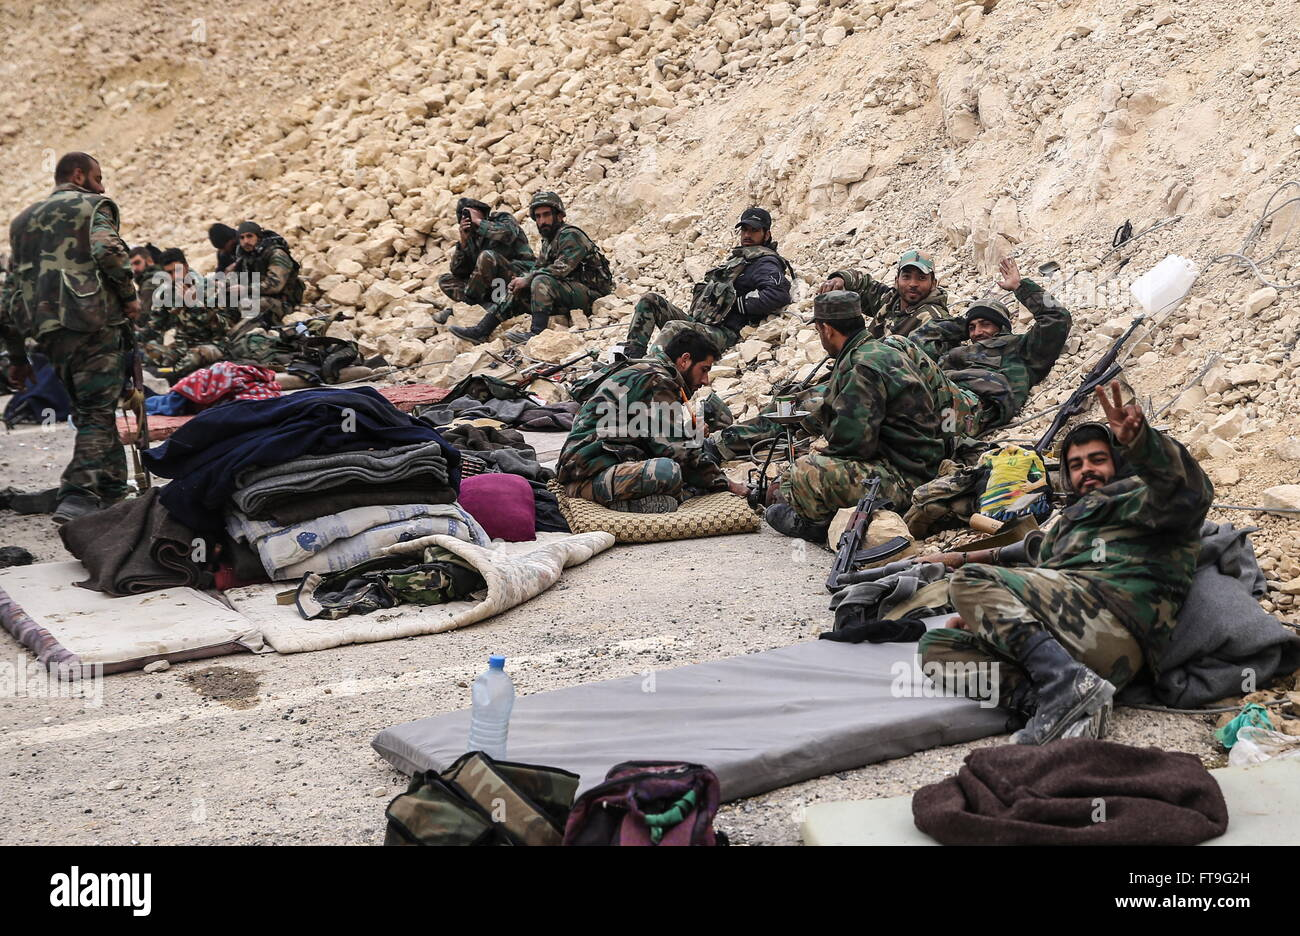 Palmyra, Syria. 26th Mar, 2016. Soldiers of the Syrian government army at the Fahkr ad-Din al-Maani castle in Palmyra, - Stock Image